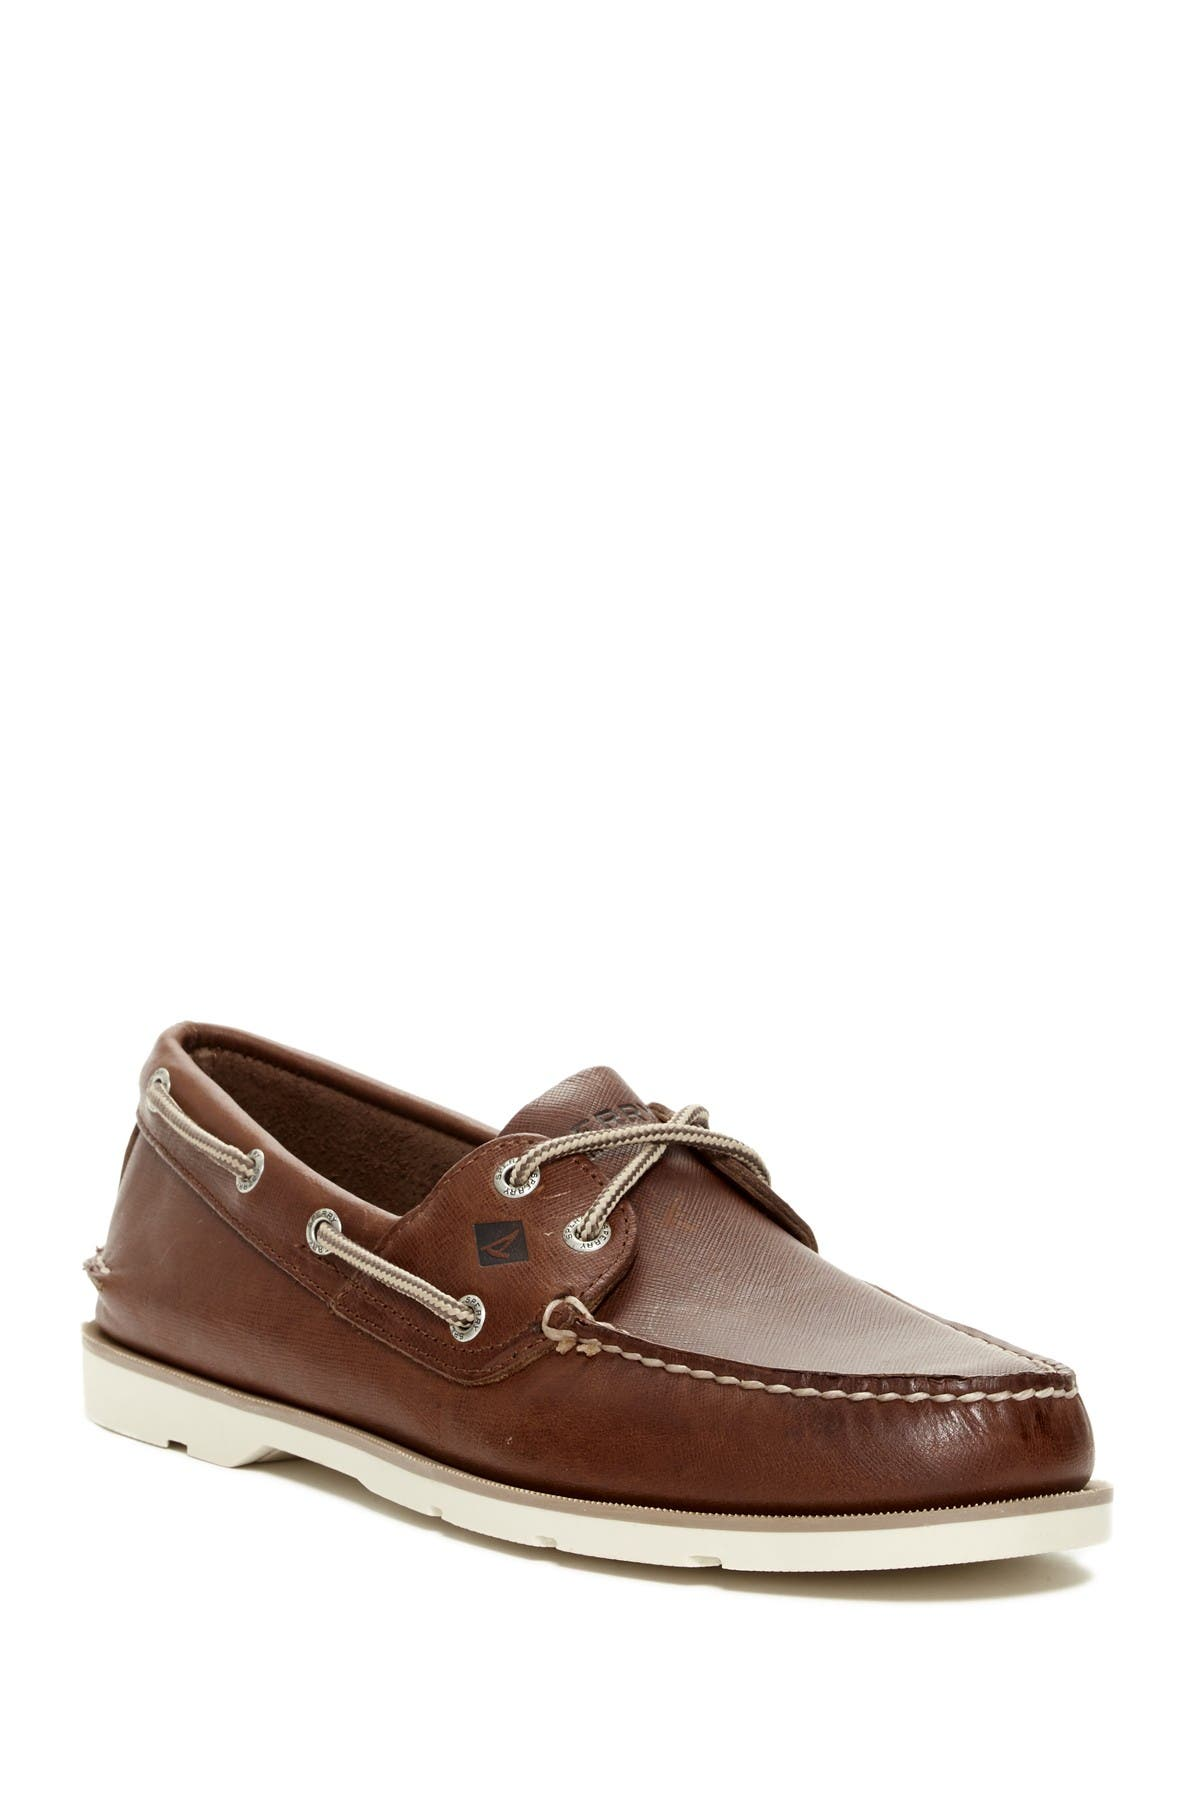 Image of Sperry Leeward Leather Boat Shoe